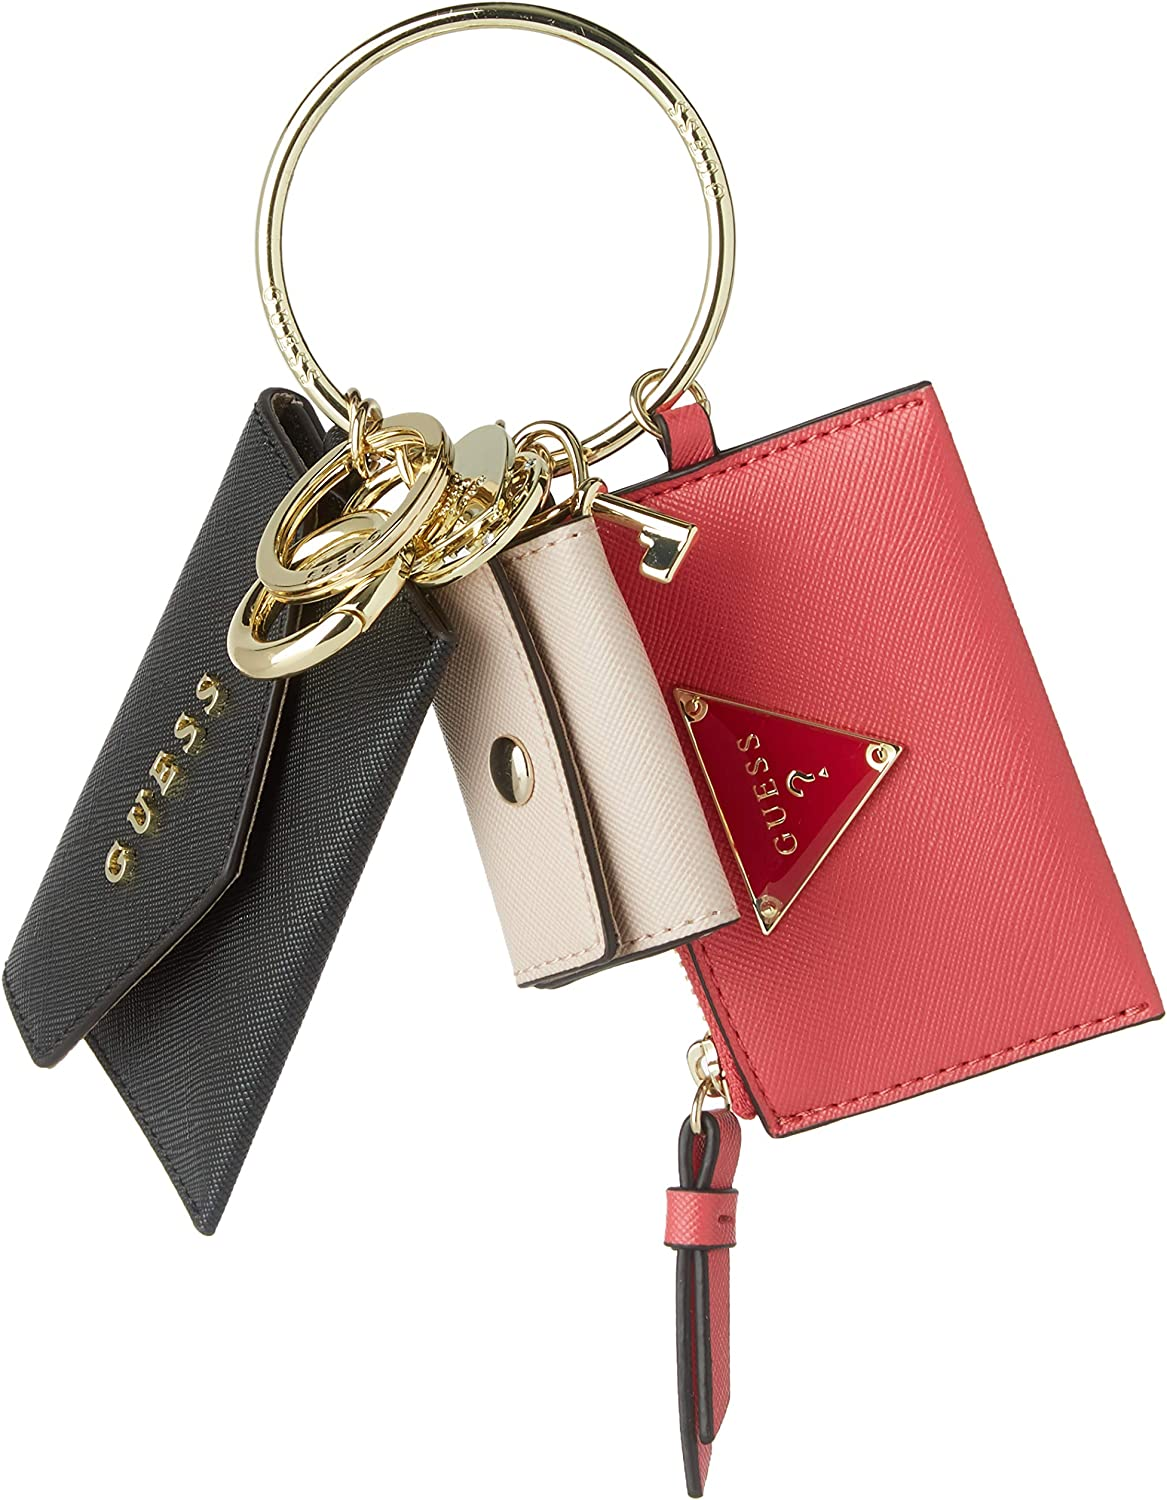 GUESS3 Pouch KeychainMujerEstuches de llavesNegro (Black)1x1x1 Centimeters (W x H x L): Amazon.es: Zapatos y complementos